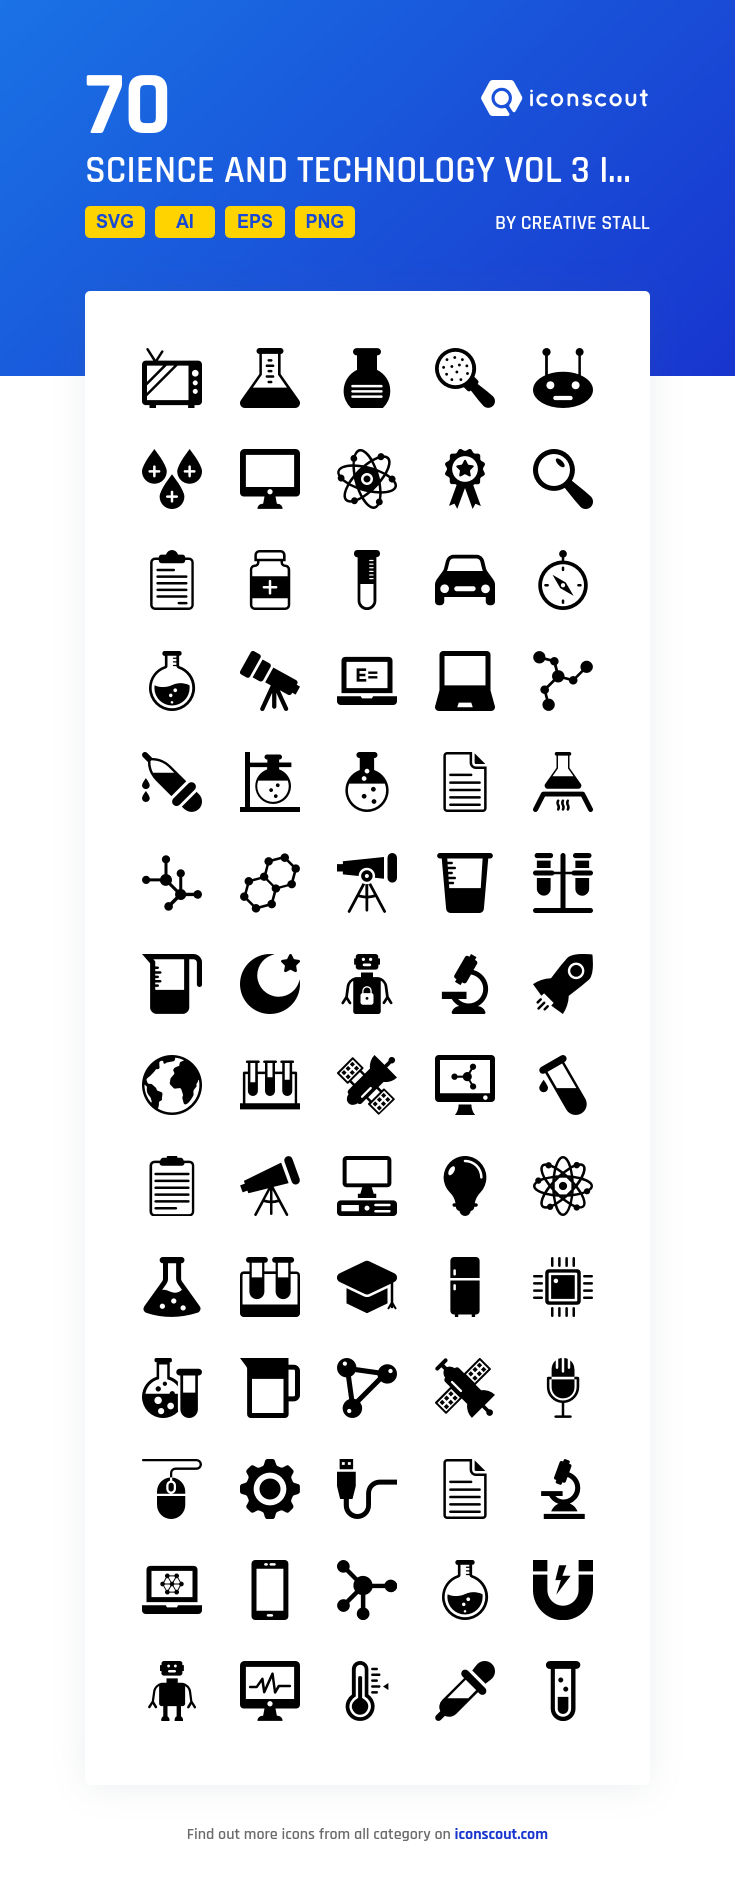 Download Science And Technology Vol 3 Icon pack